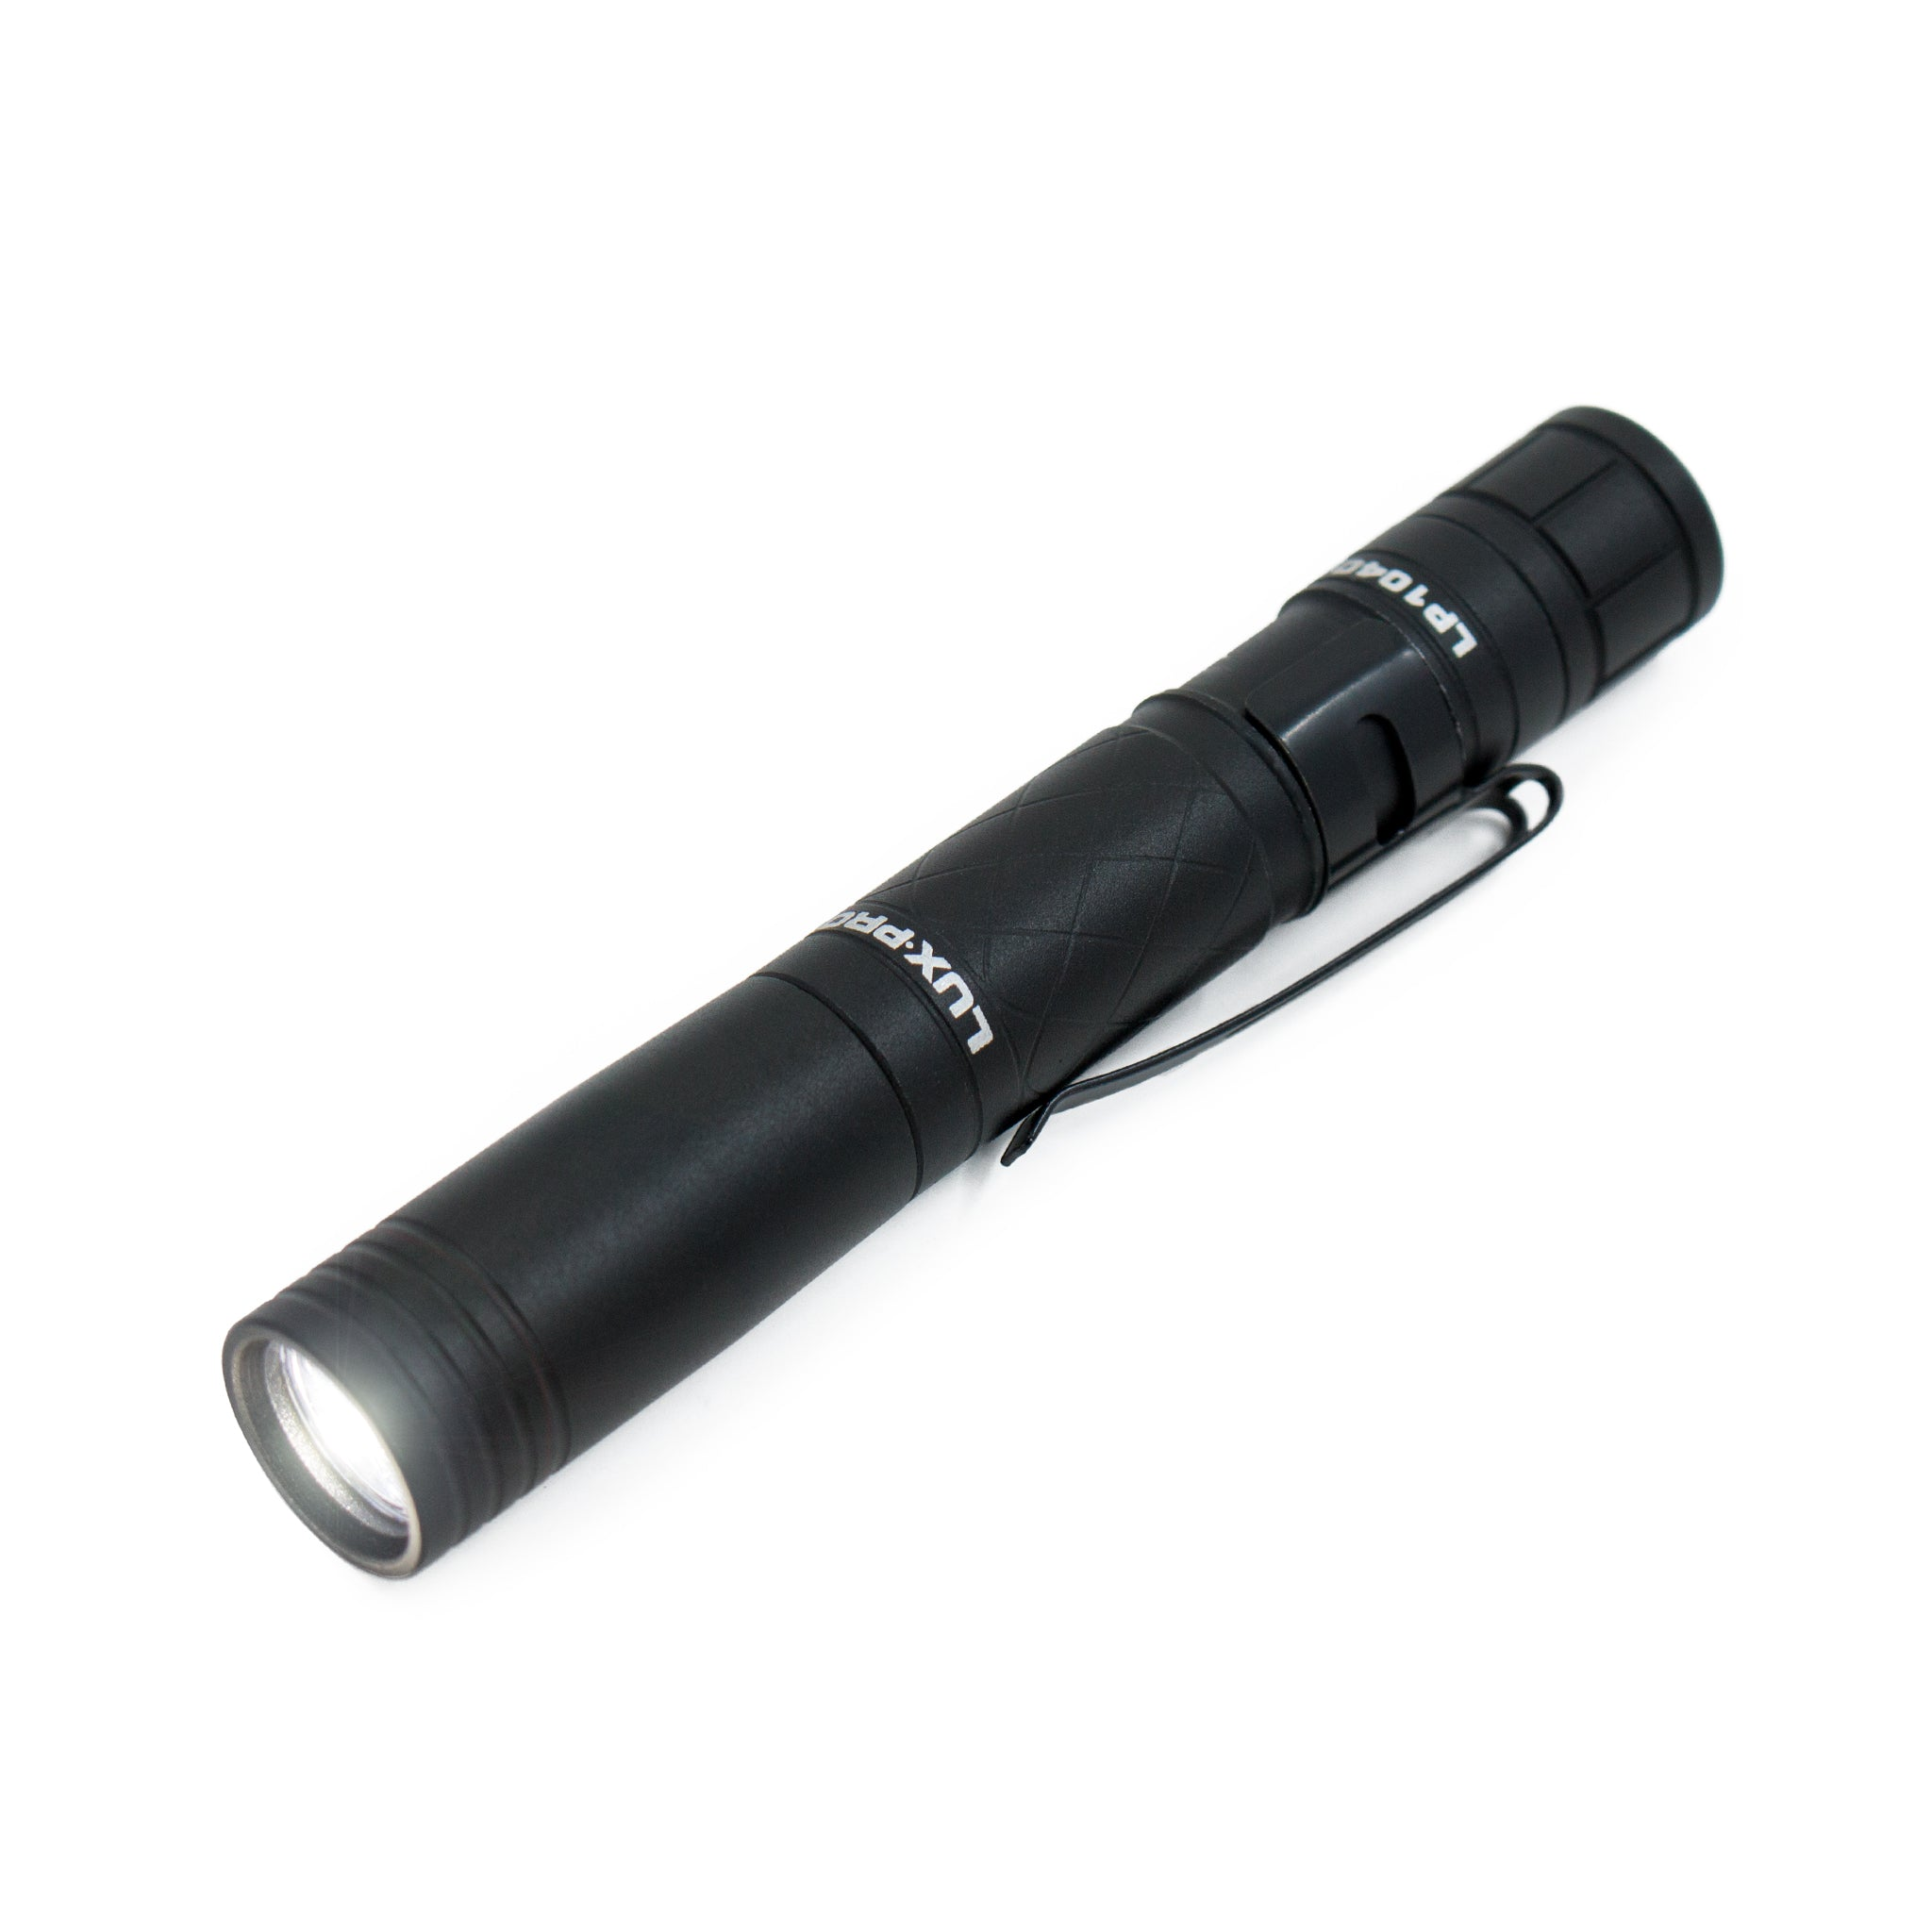 LUX-PRO Tac Pen 1040 LED Flashlight